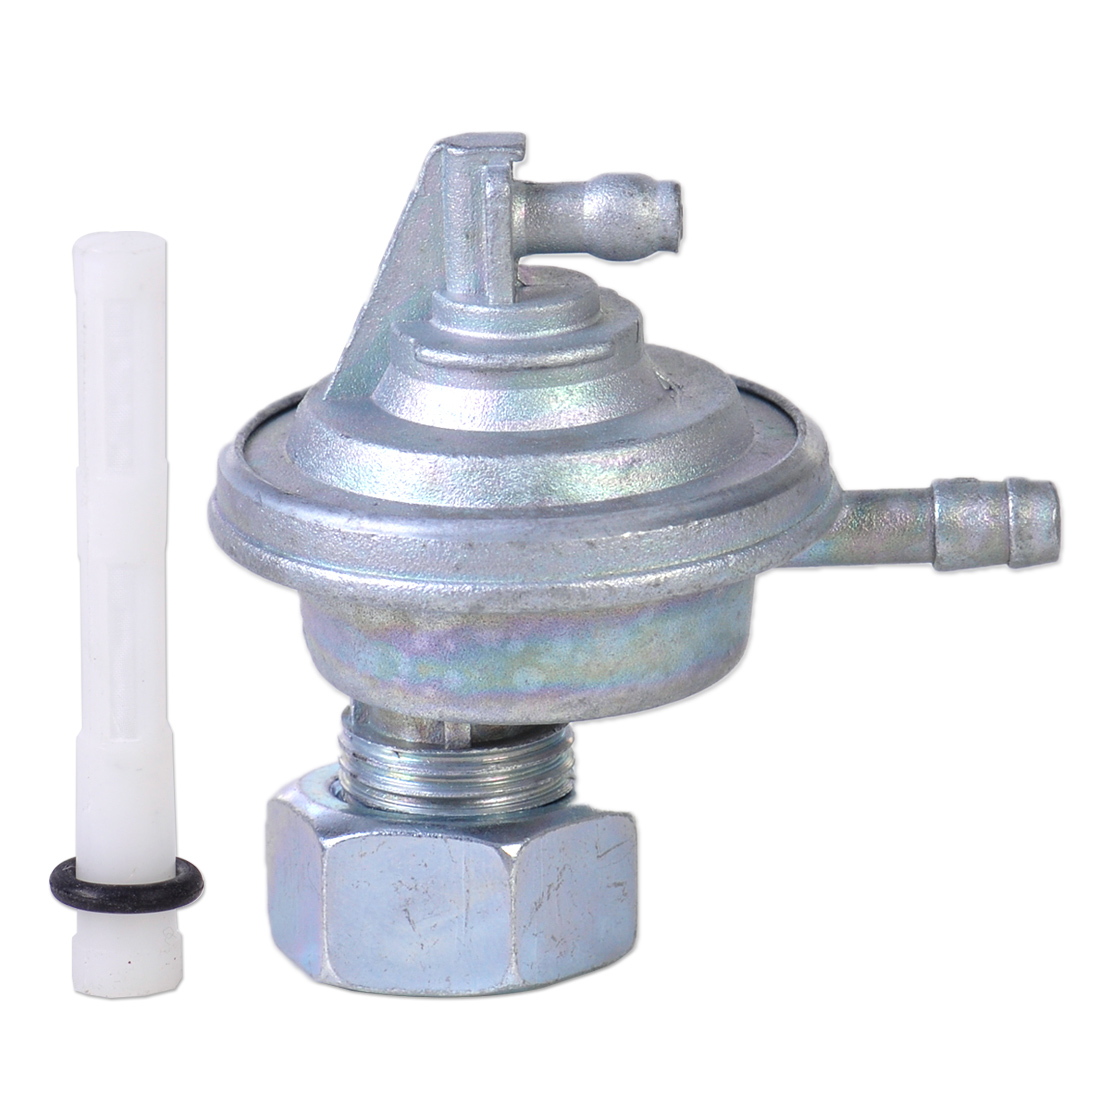 Dwcx Fuel Pump Petcock For Chinese Brands Gy6 50cc 125cc